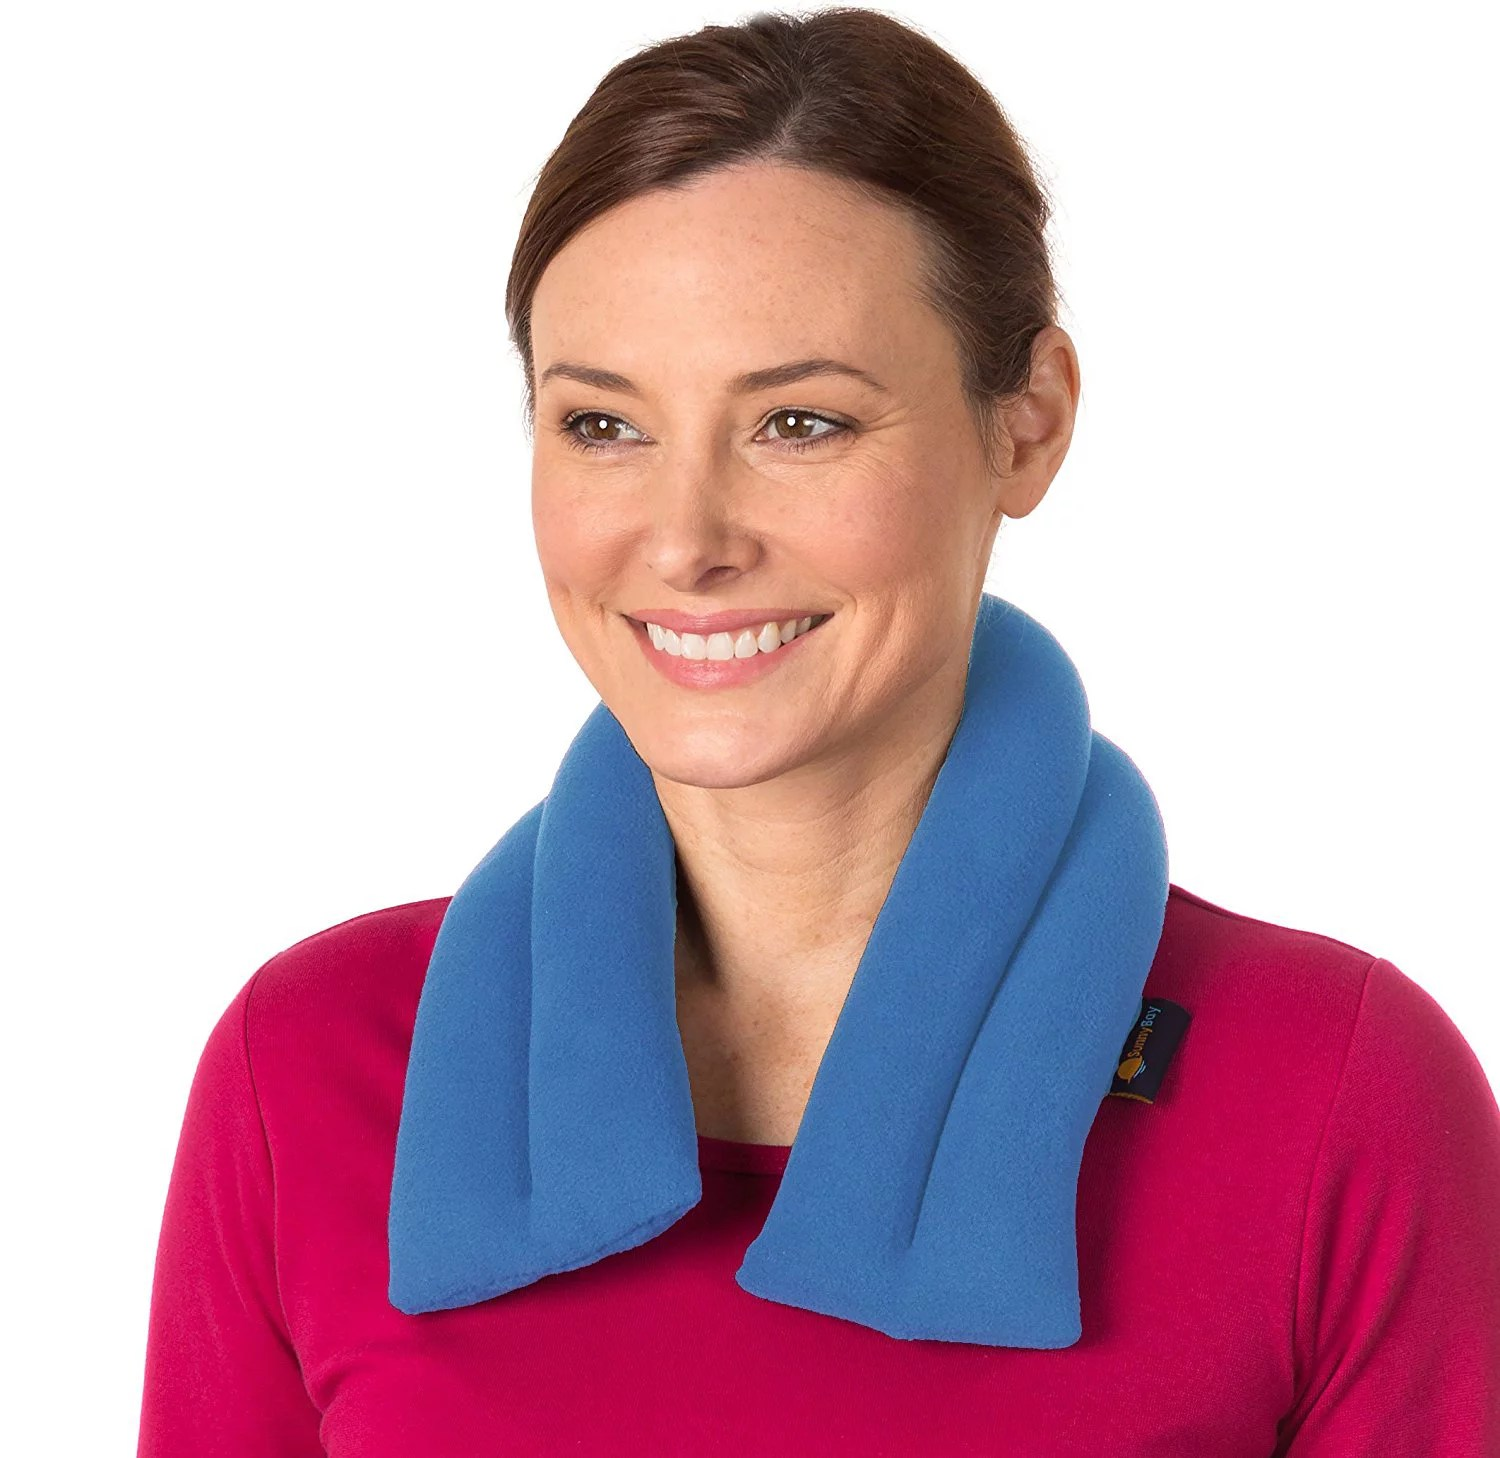 sunny bay extra long neck heating wrap microwavable heat pad heated neck wrap best for neck pain relief microwavable moist pack skyblue